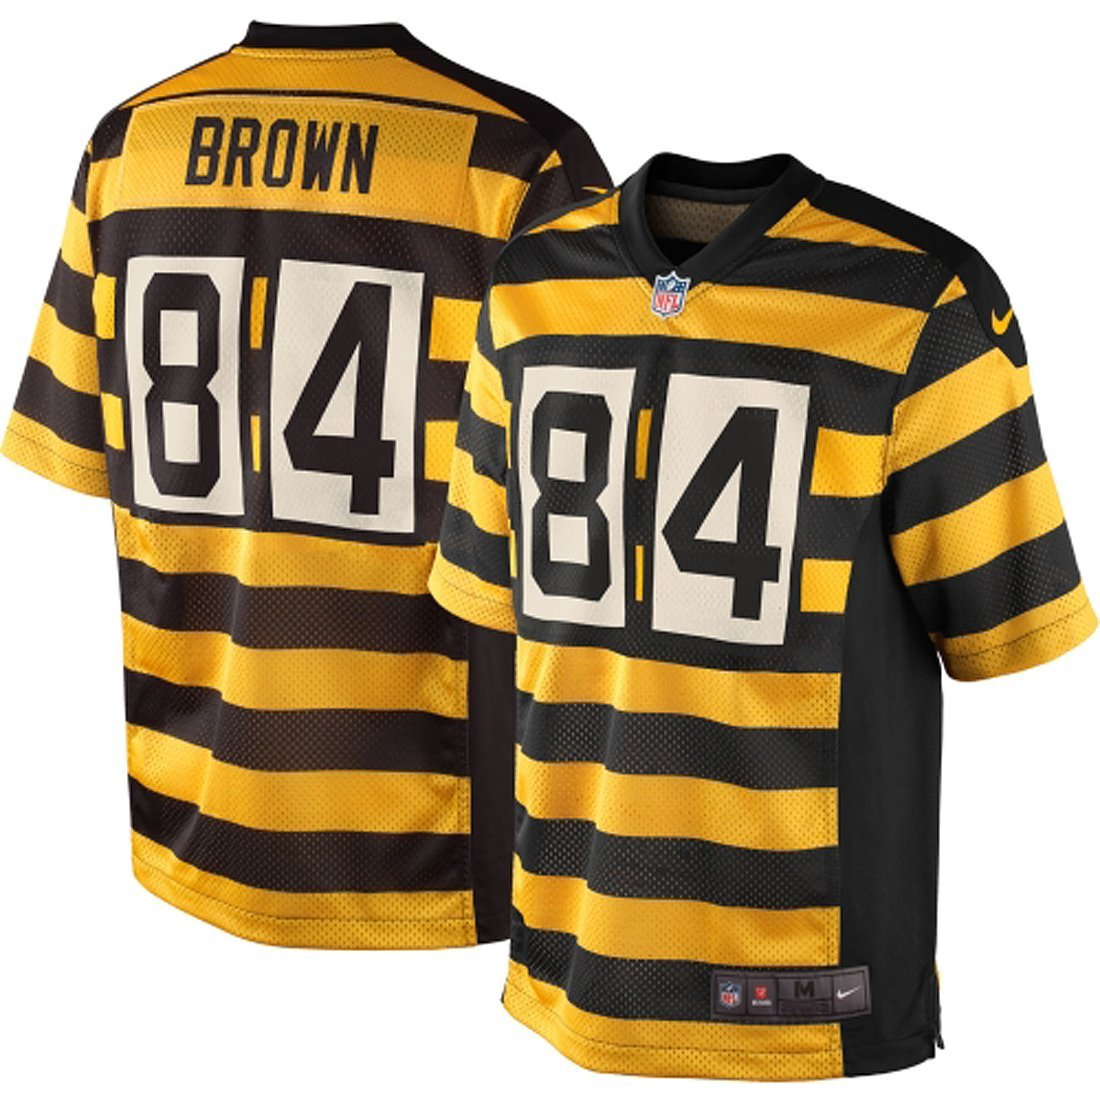 b9b2968f495 Get Quotations · Pittsburgh Steelers Antonio Brown Youth Throwback Nike  Bumblebee Game Jersey (YOUTH MEDIUM)